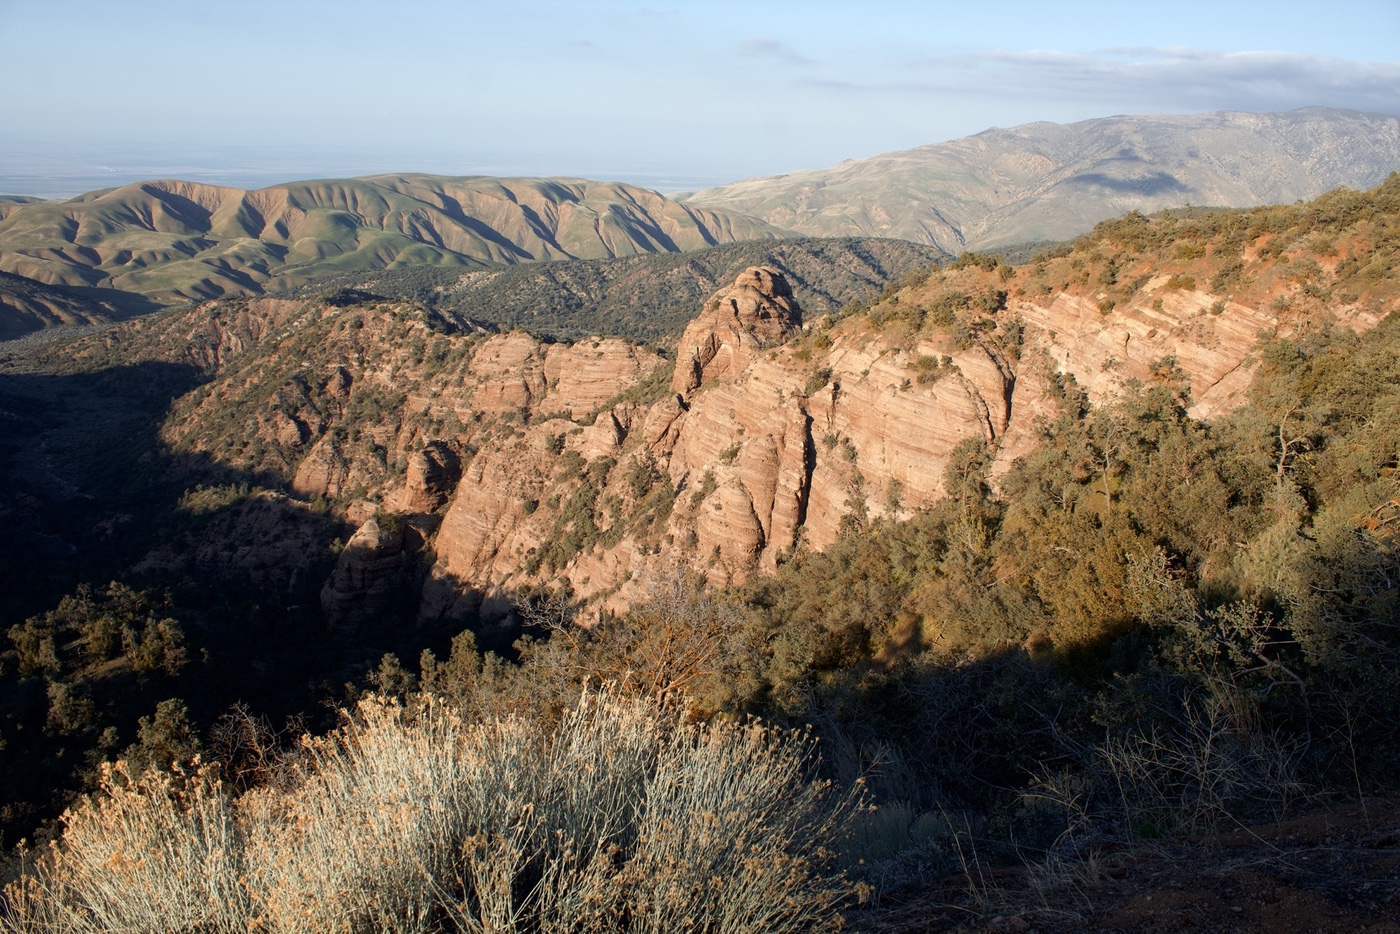 Sunset on banded red sandstone in Los Padres National Forest